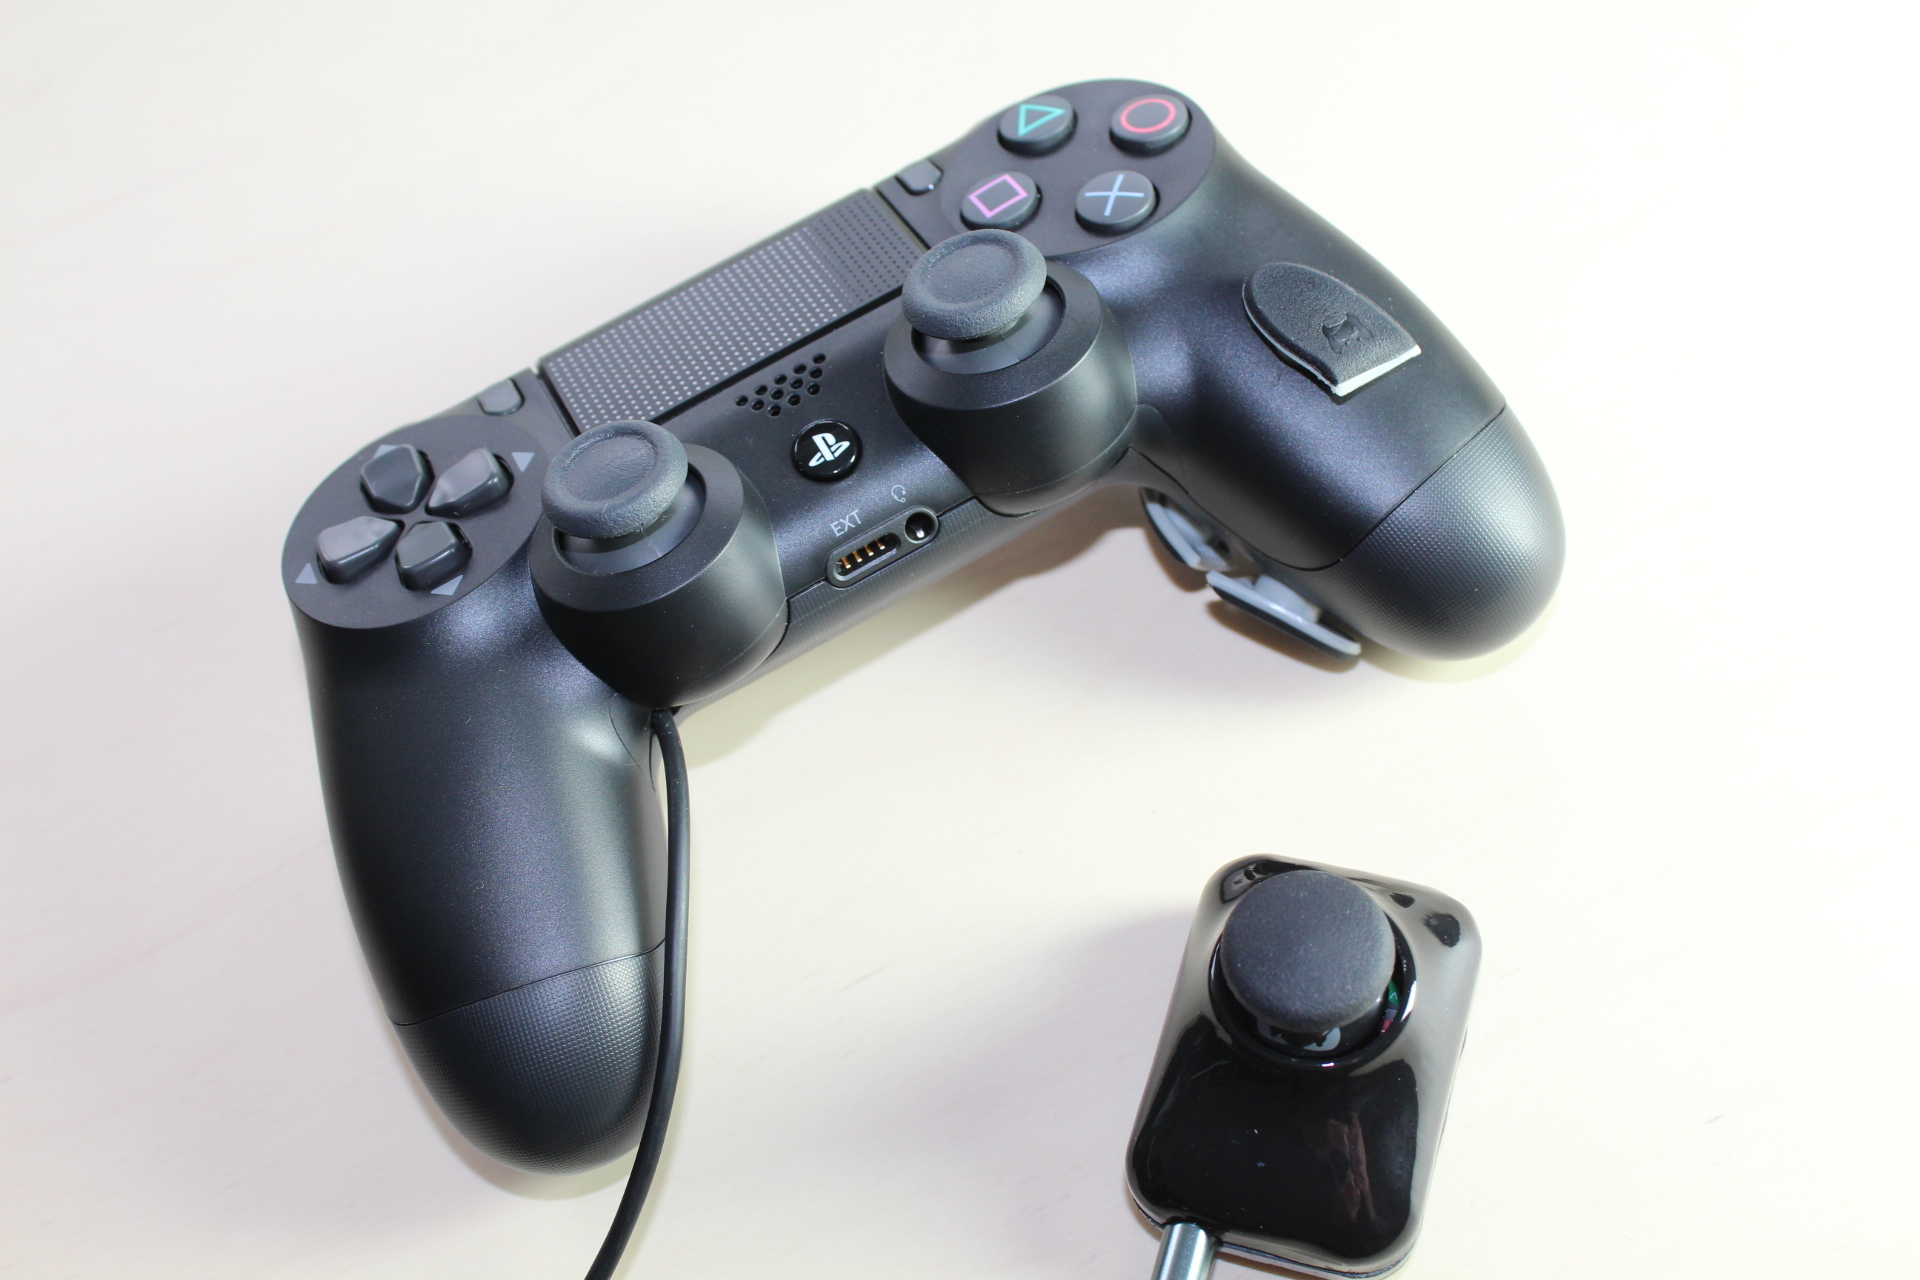 PS4 'Righty' Controller with the extension option for the left thumbstick next to it. Three additonal buttons are on the right hand grip.